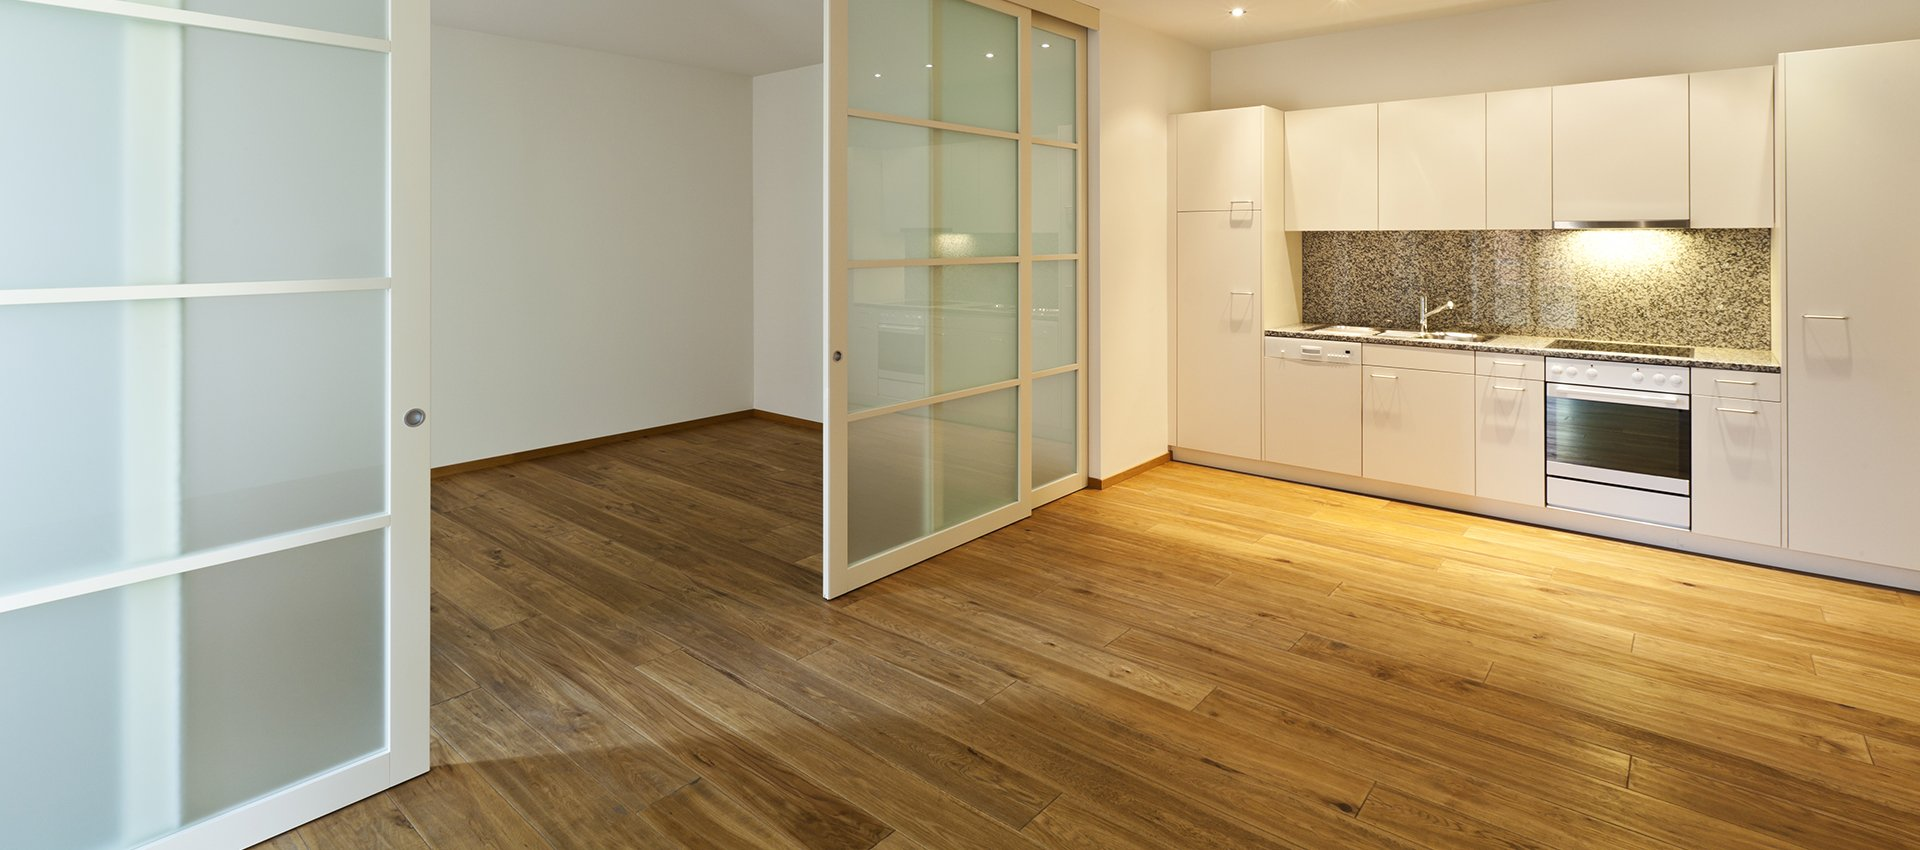 wooden flooring in kitchen